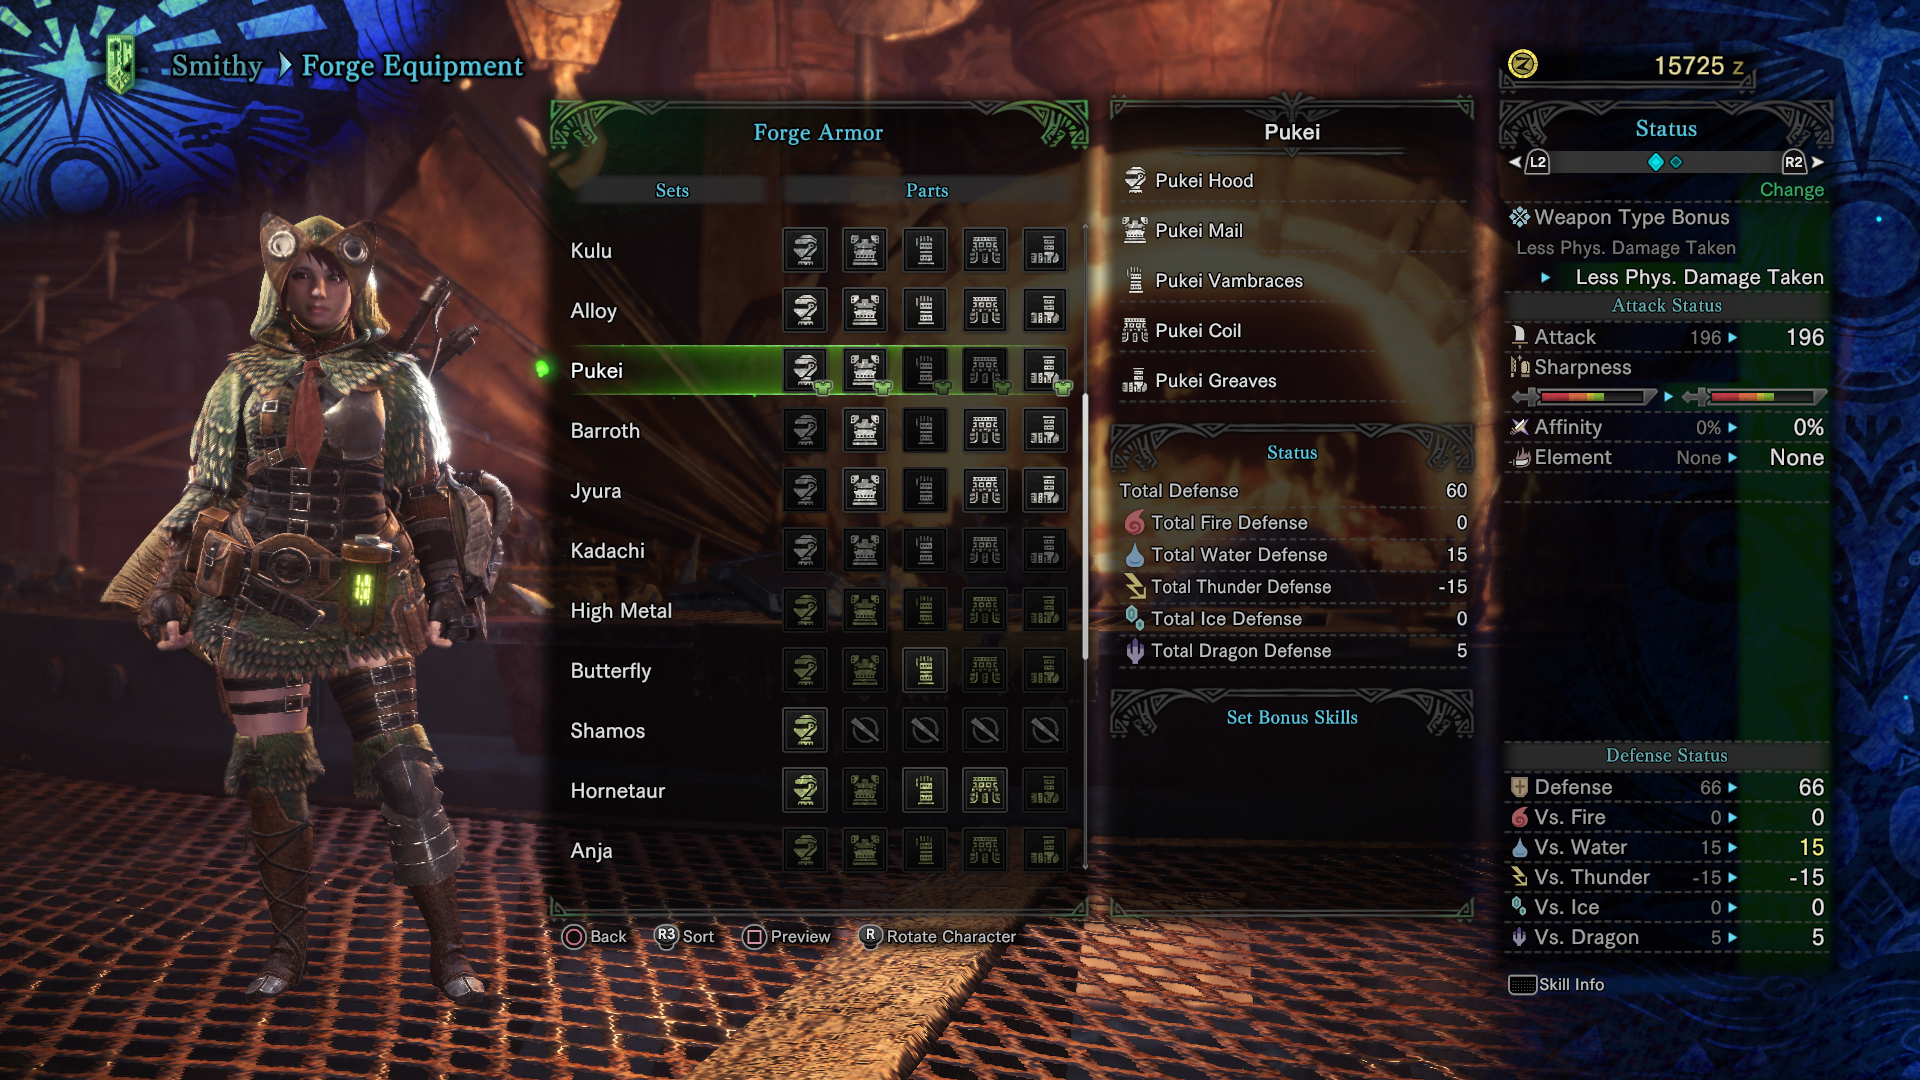 Monster Hunter World Iceborne Armor How To Unlock And Craft Master Rank Armor Usgamer Without armour crafting, there is no monster hunter. monster hunter world iceborne armor